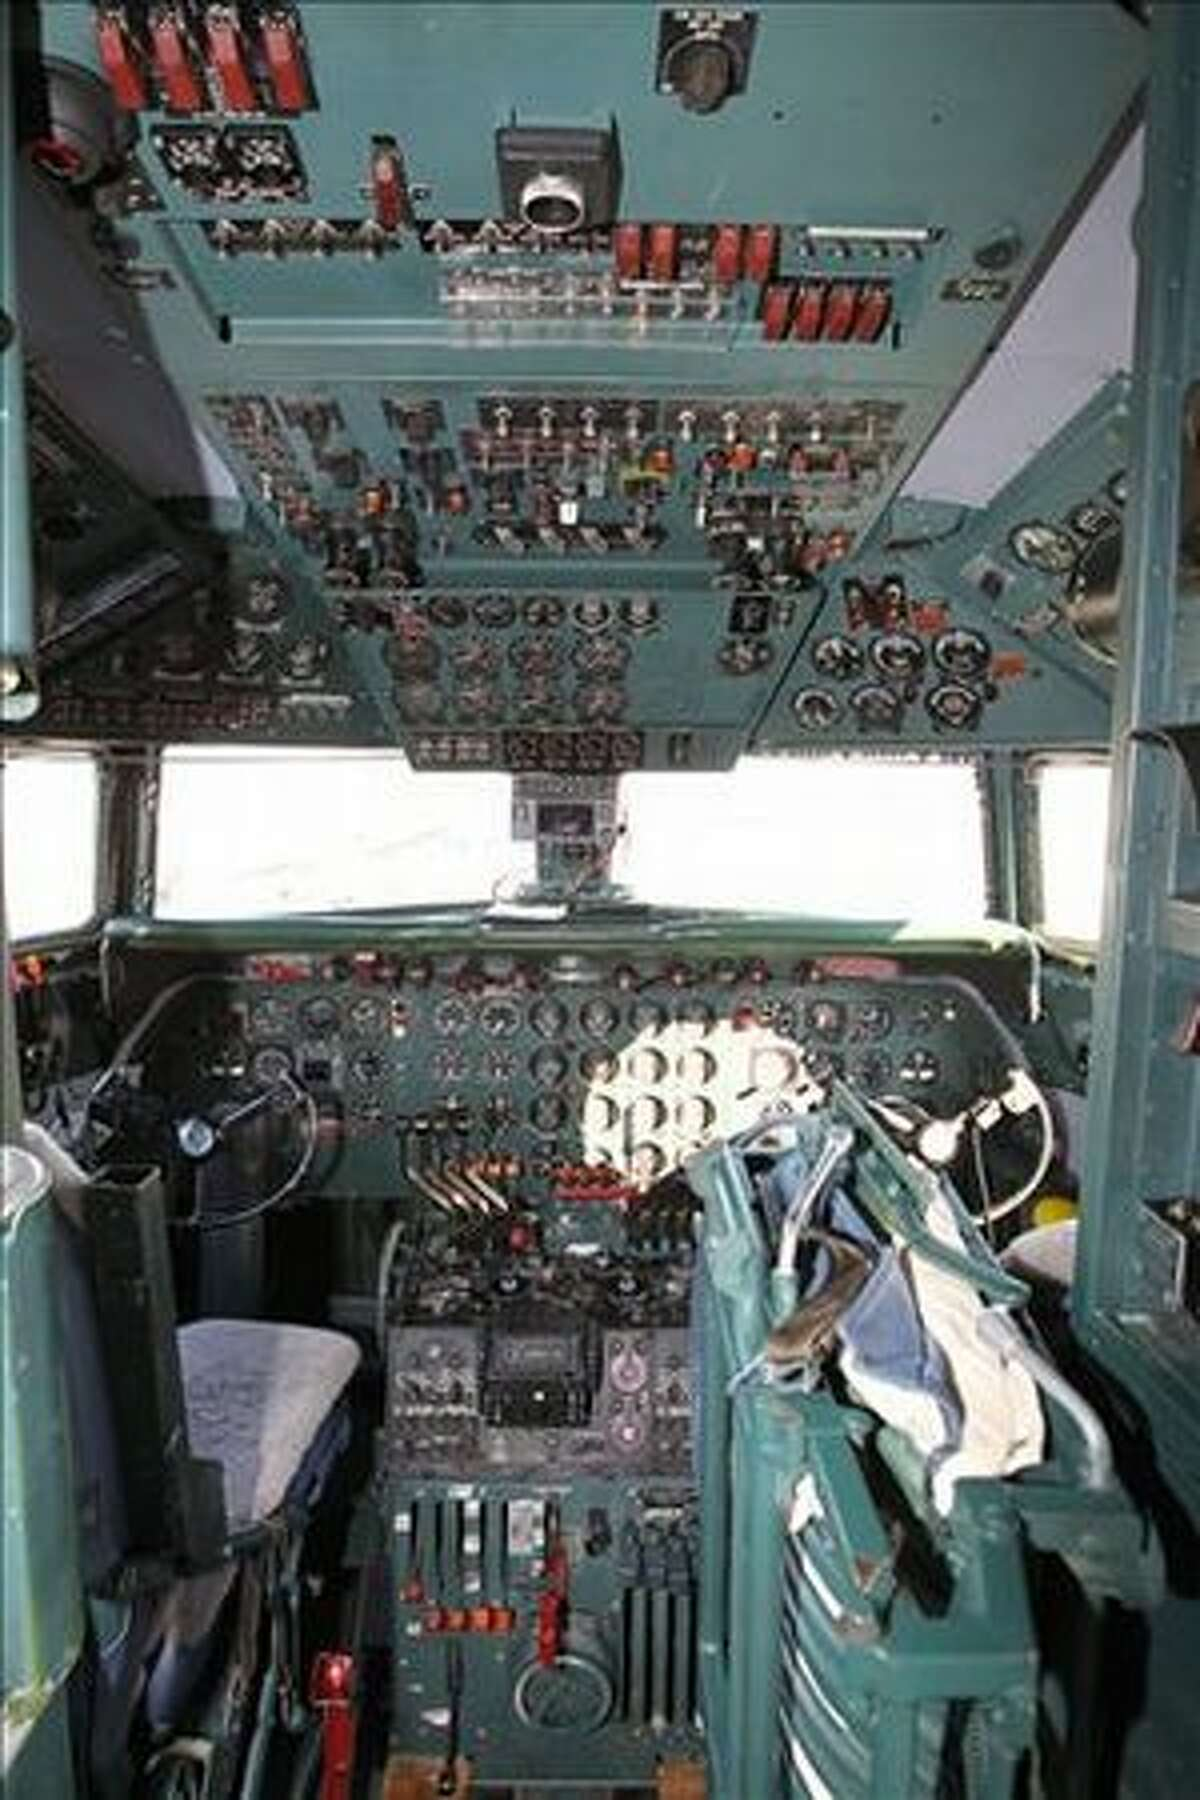 A view of the cockpit of the DC-7. (DAN LUFT/EAA)